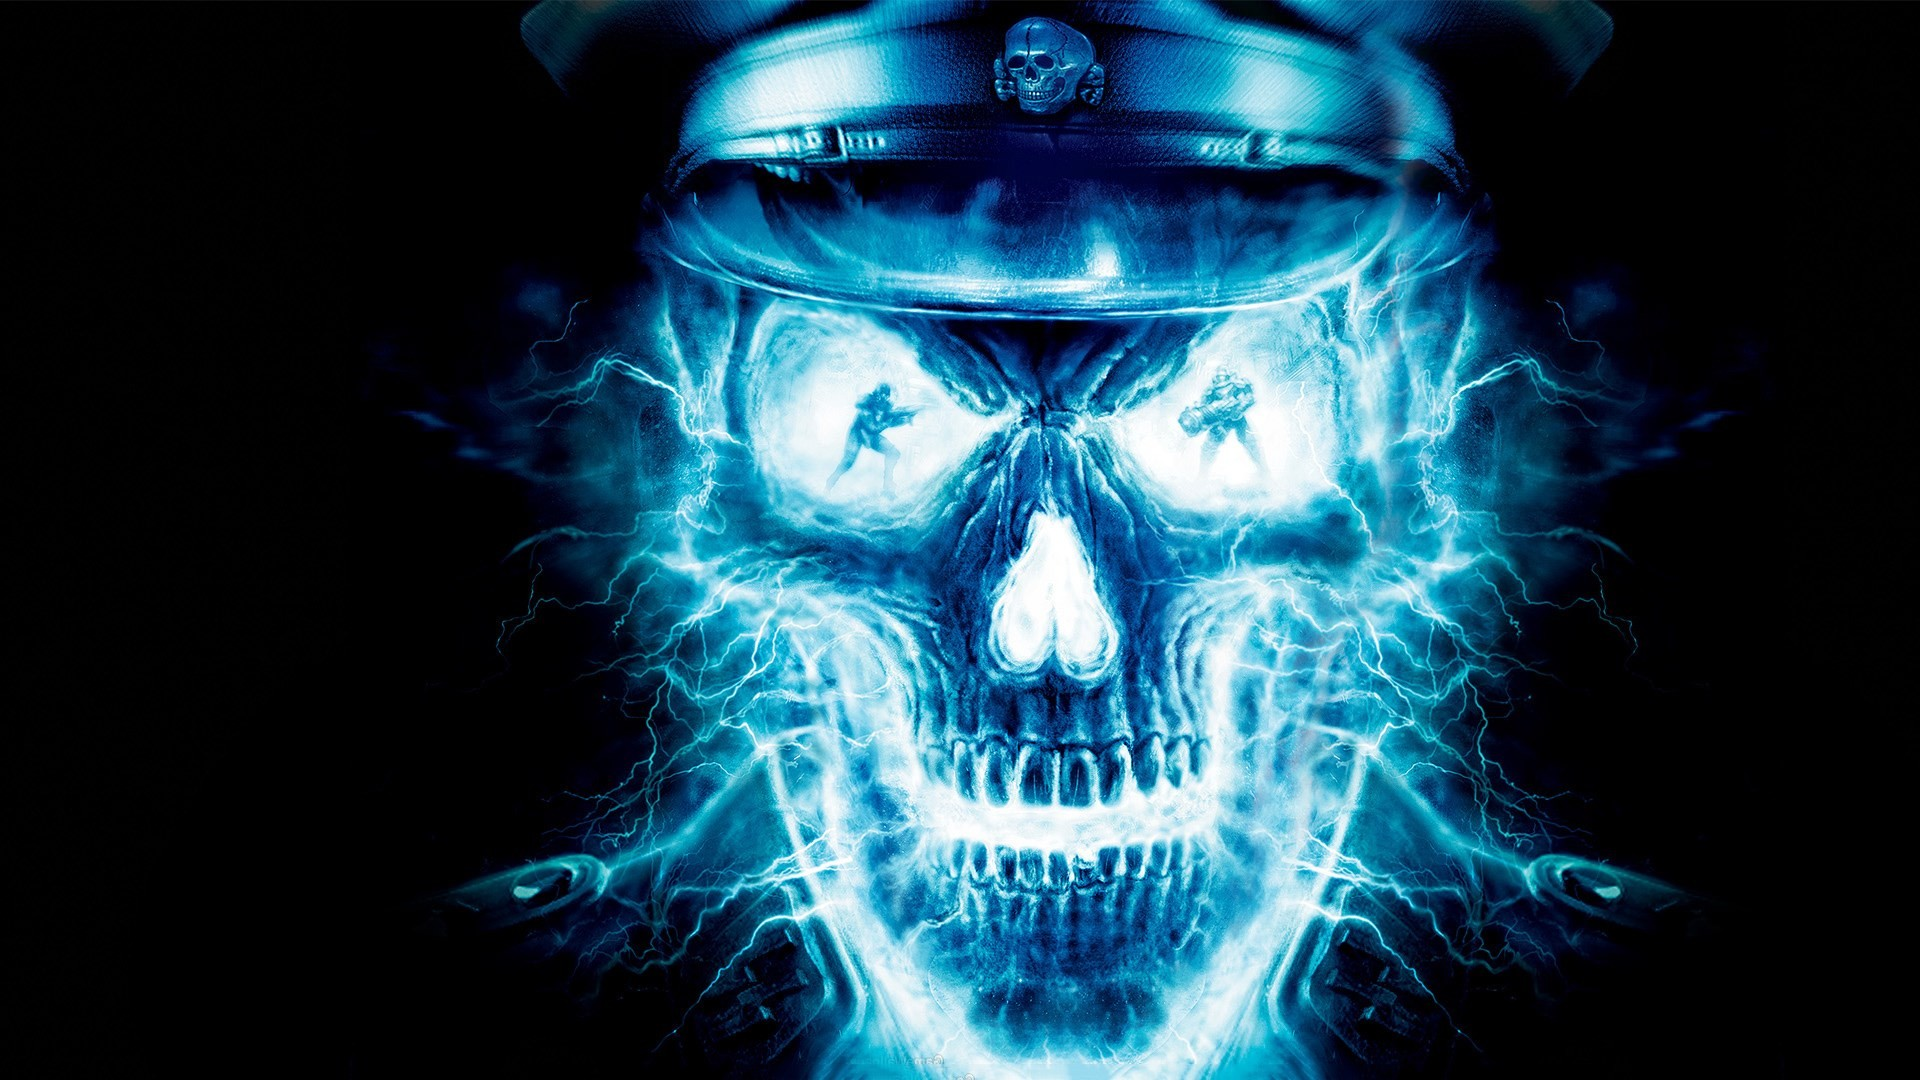 1920x1080 HD Skull Wallpapers : Find best latest HD Skull Wallpapers for your PC  desktop background & mobile phones.